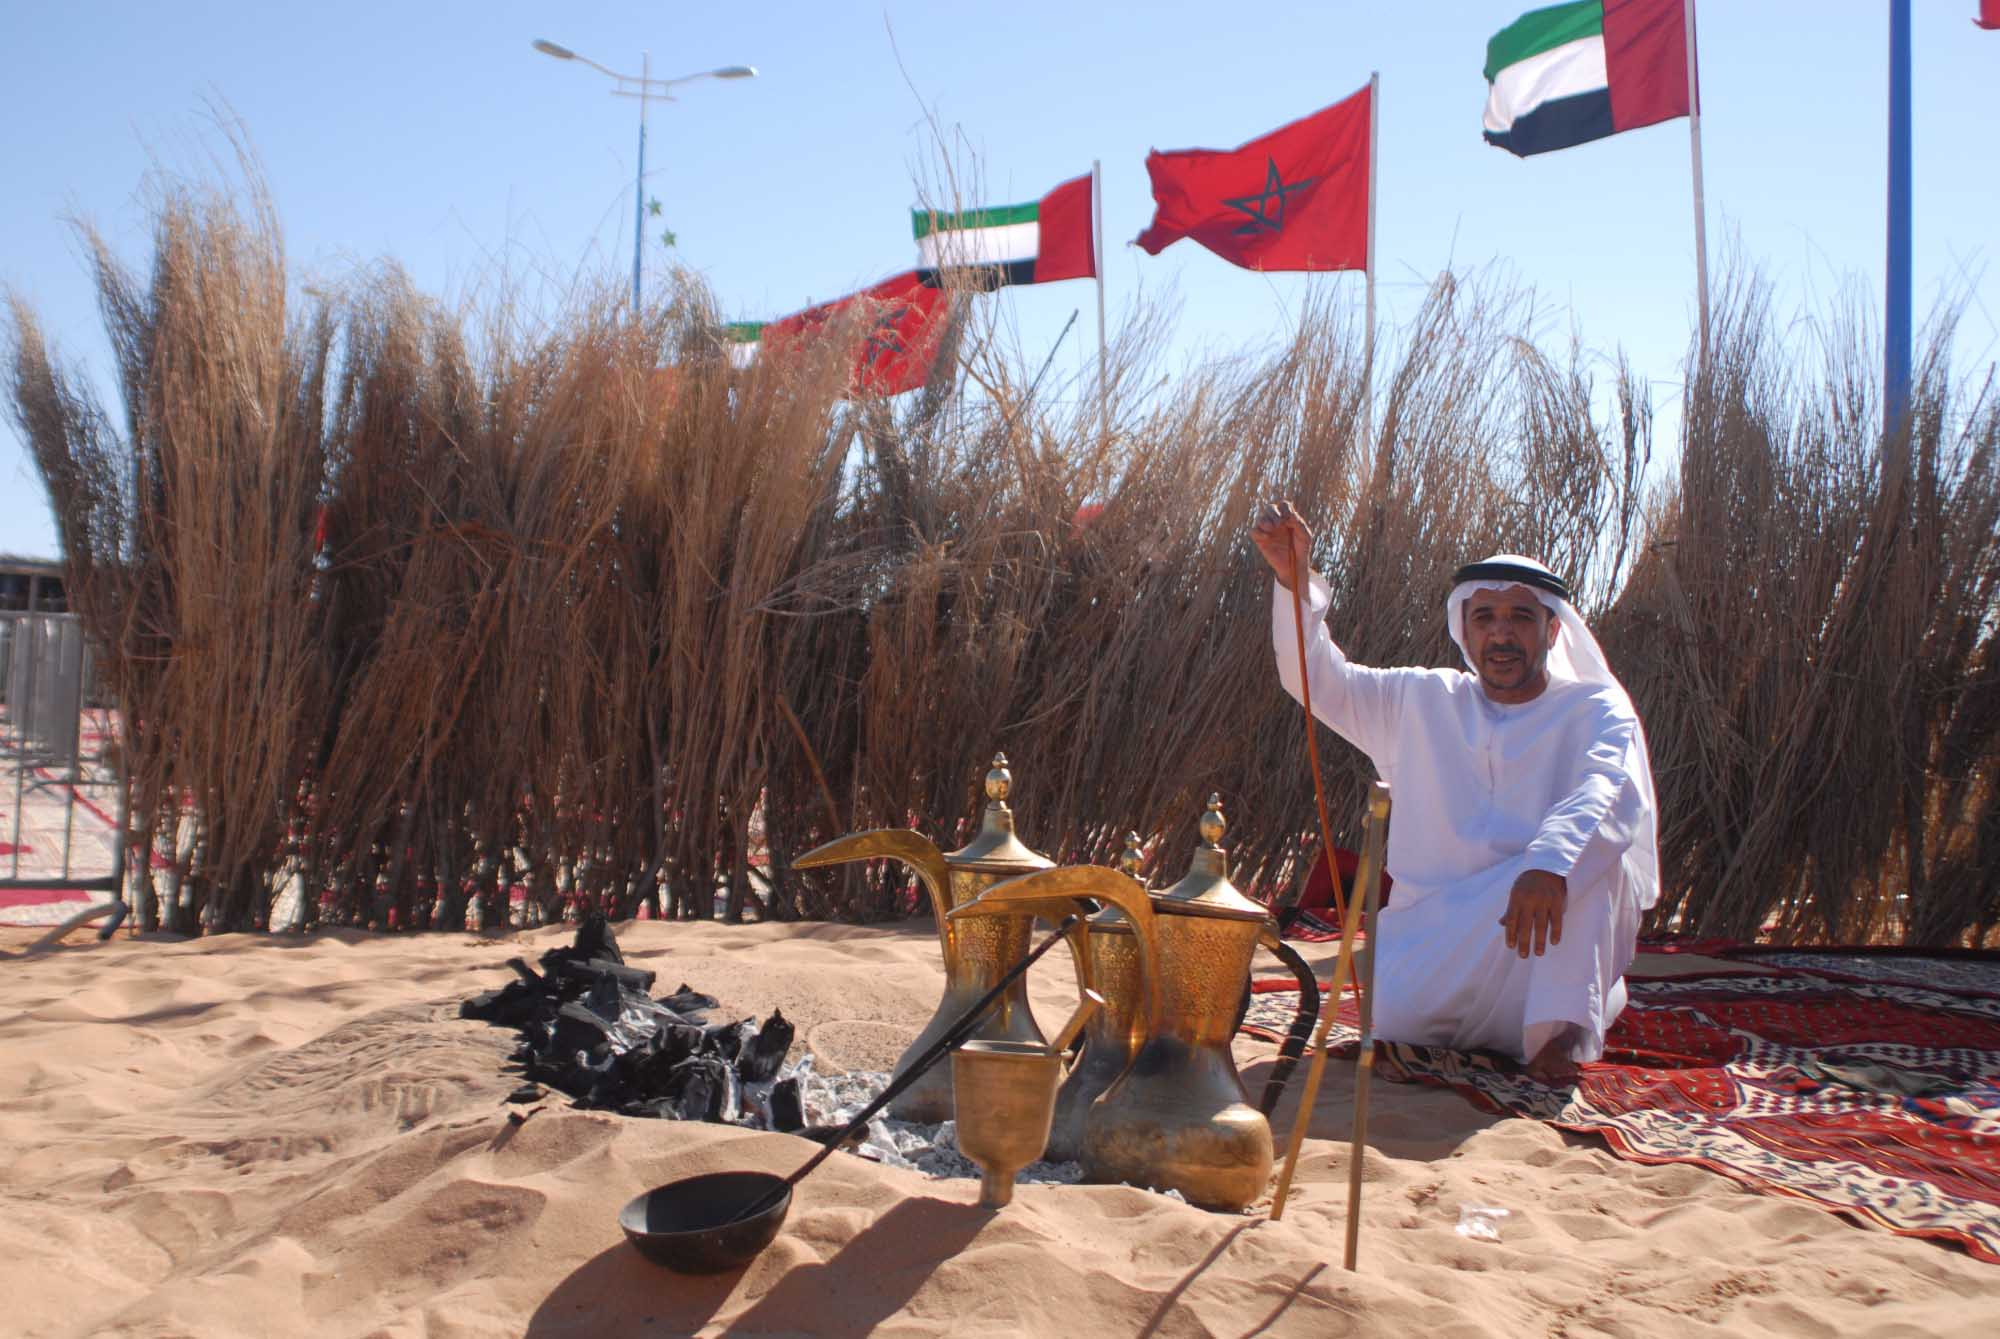 emirati heritage in african sahara as the uae participates in morocco's tan tan moussem festival4